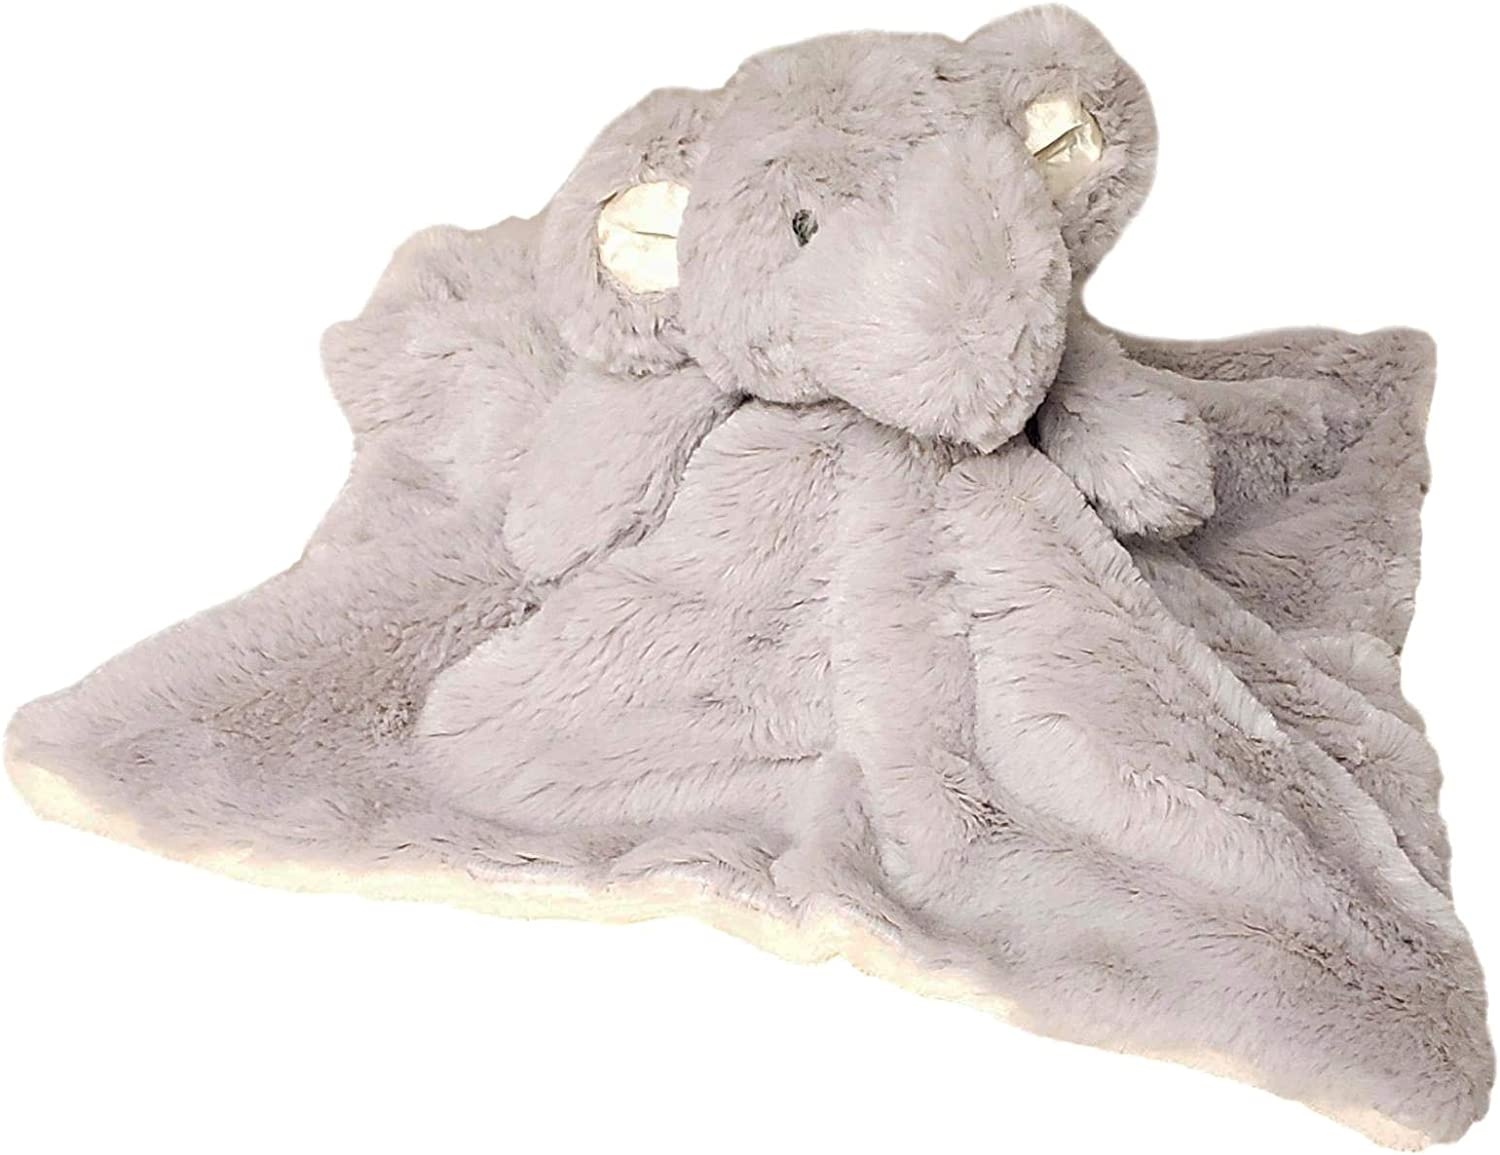 Grey Elephant - NO Embroidery SONA G DESIGNS Custom Personalized Elephant Lovie Lovey Security Blanket with Rattle